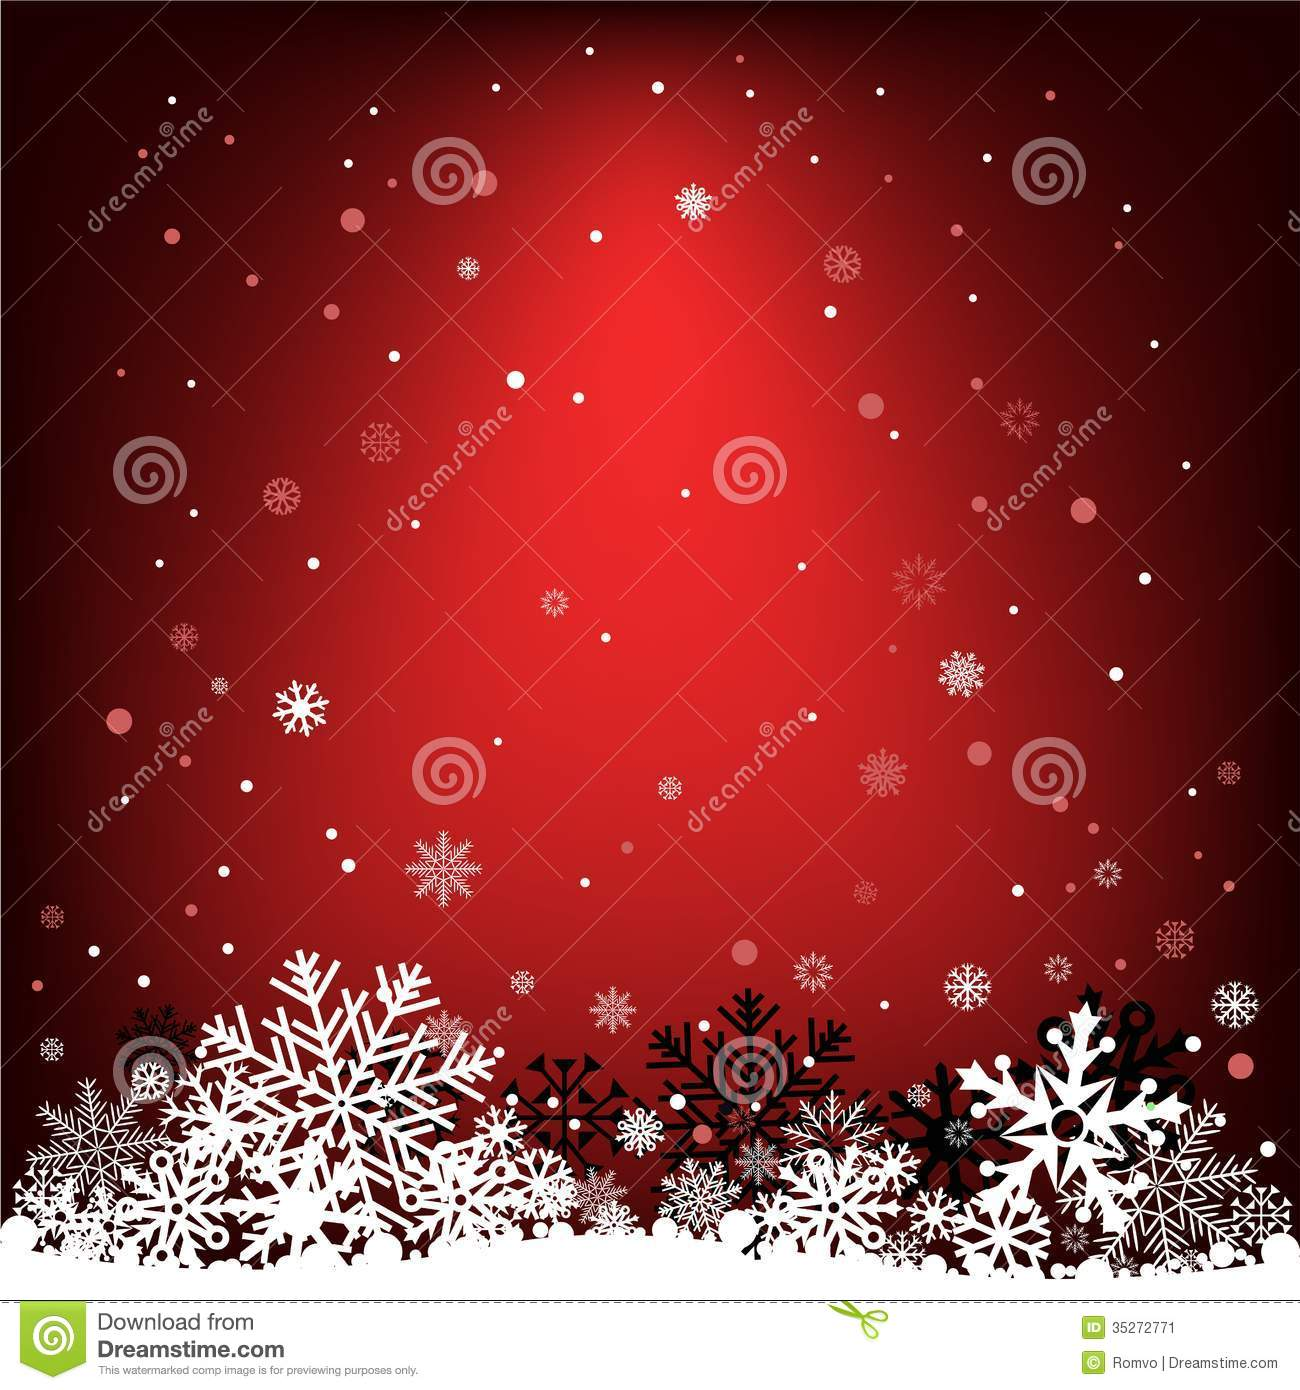 Snow Falling Wallpaper Download Dark Red Snow Mesh Background Stock Image Image 35272771